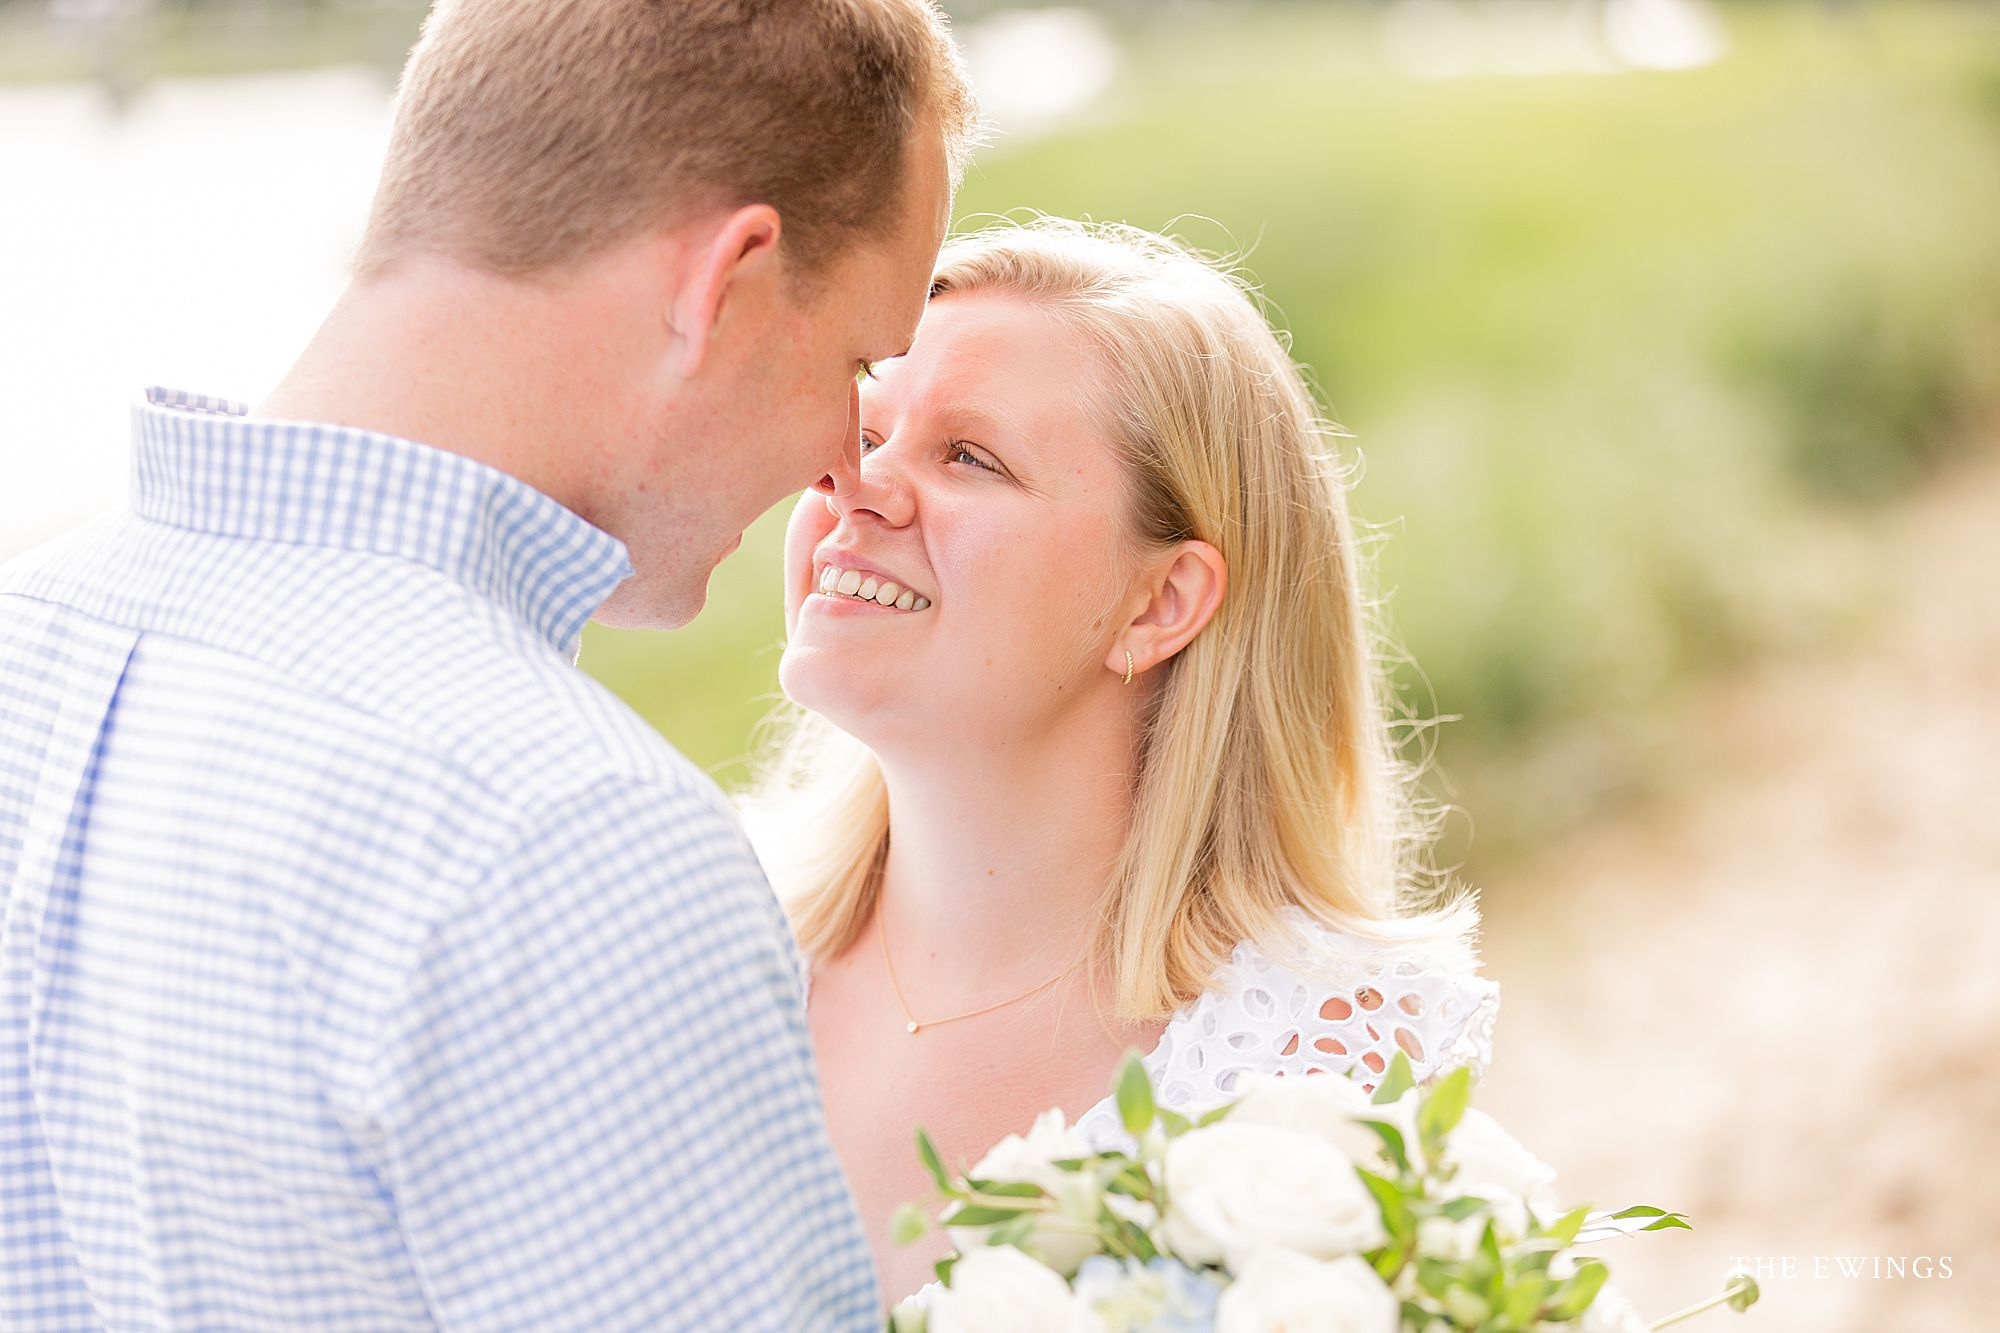 A bride and groom in Cotuit in MA after their Cape Cod elopement wedding ceremony.